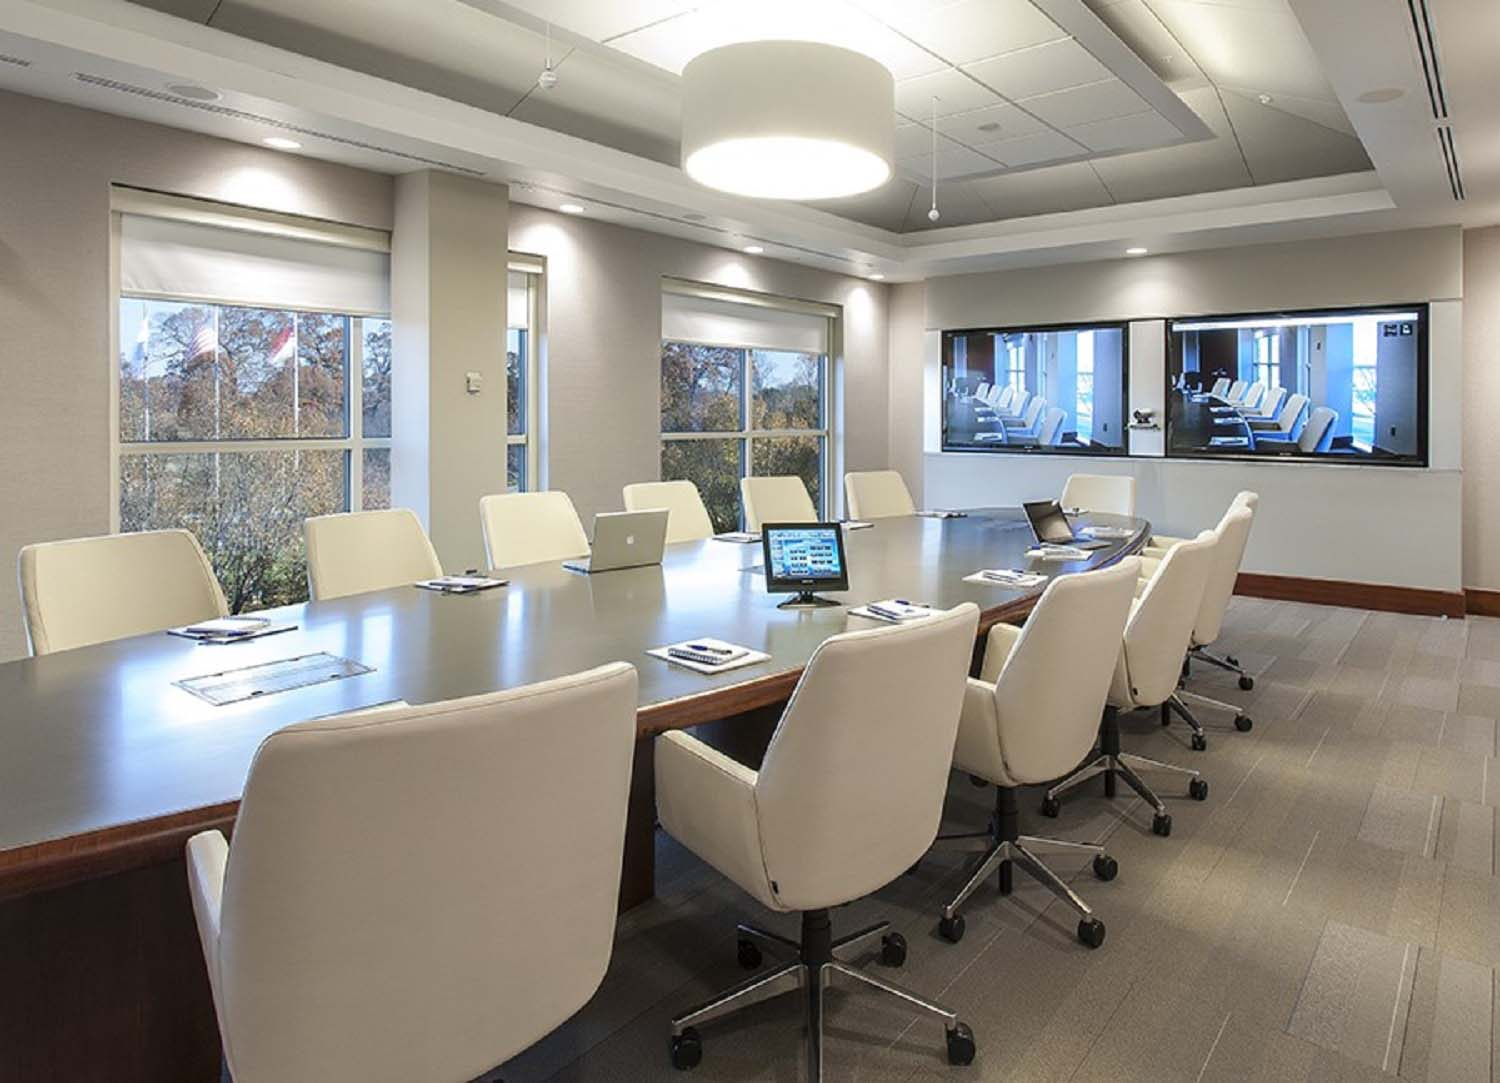 Video Conferencing, Control Systems, Integrated Sound, Sound Masking and Multiple Displays